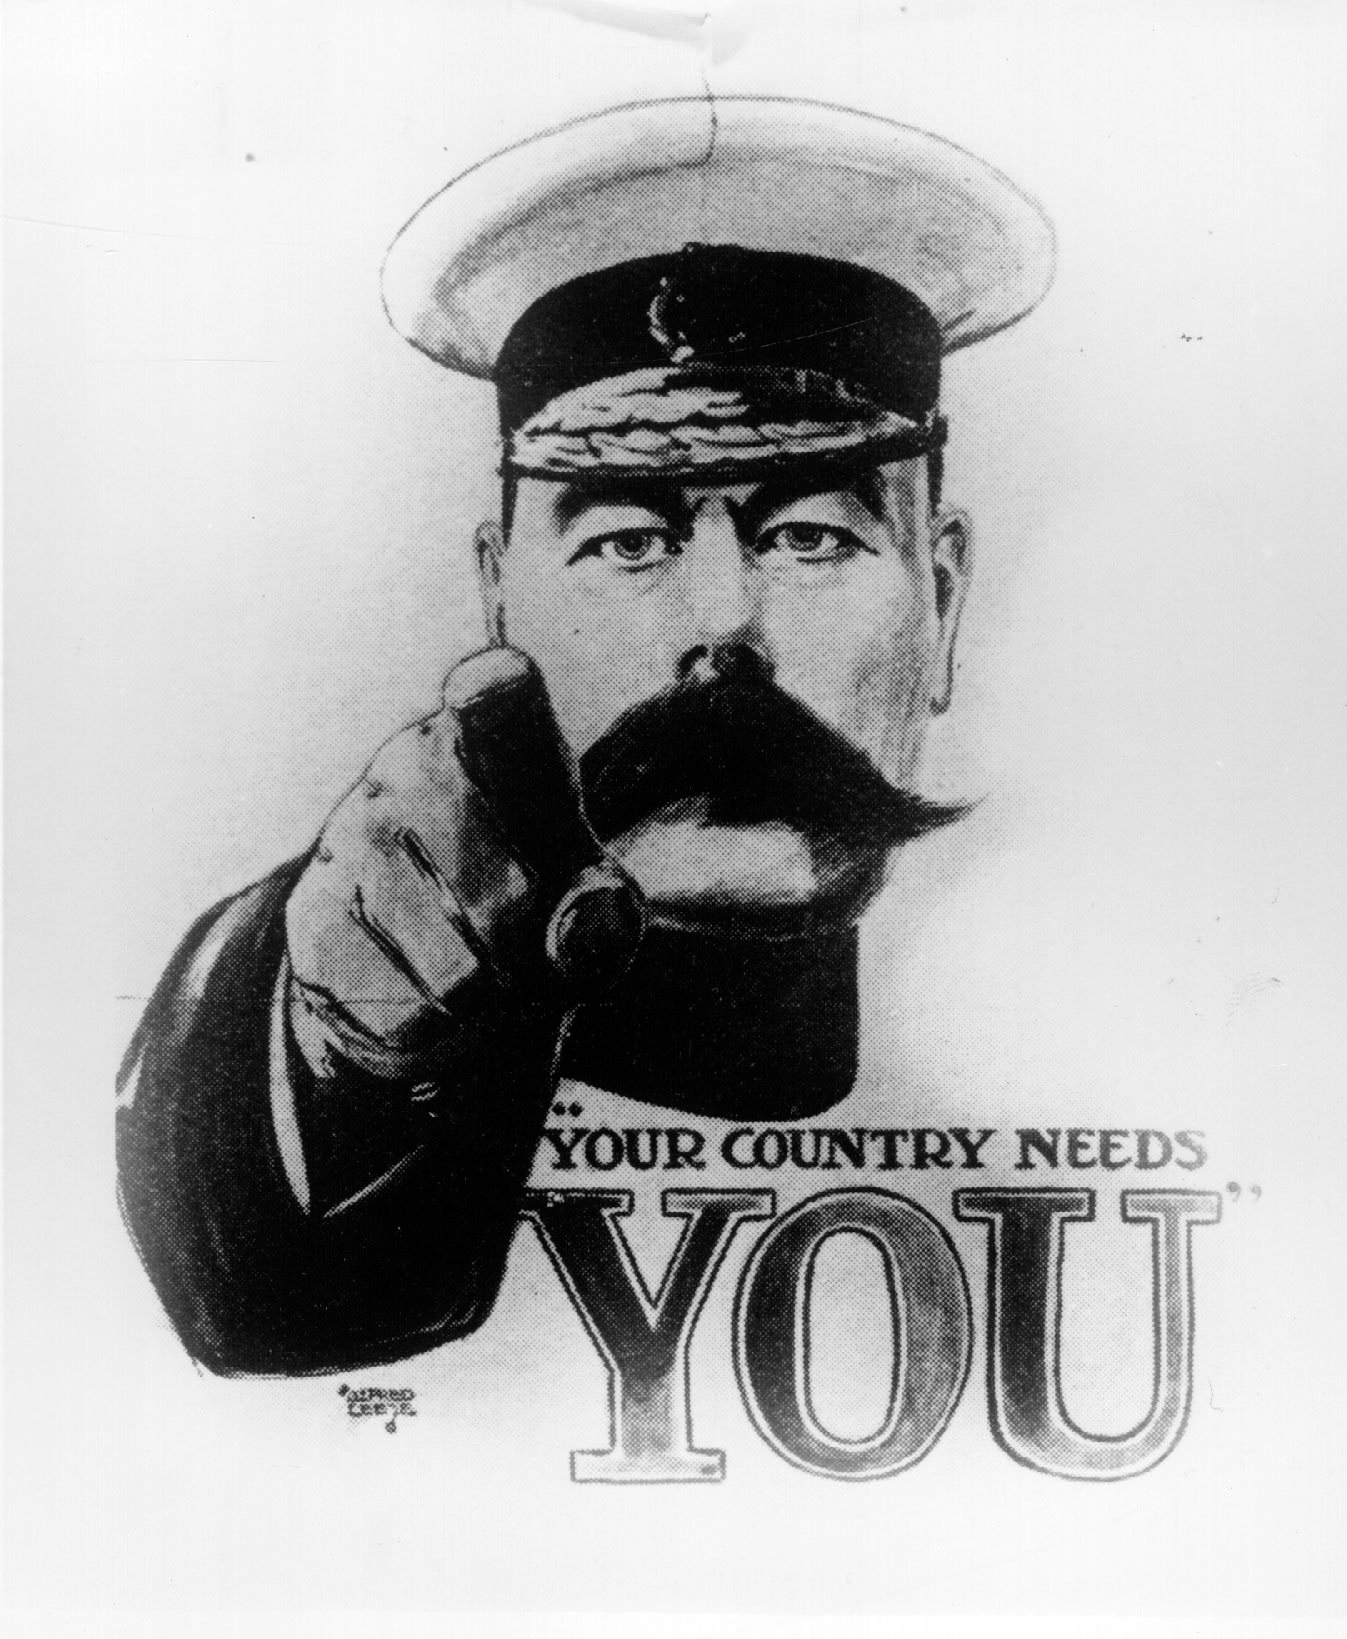 lord kitchener your country needs you ben tarnoff 9709